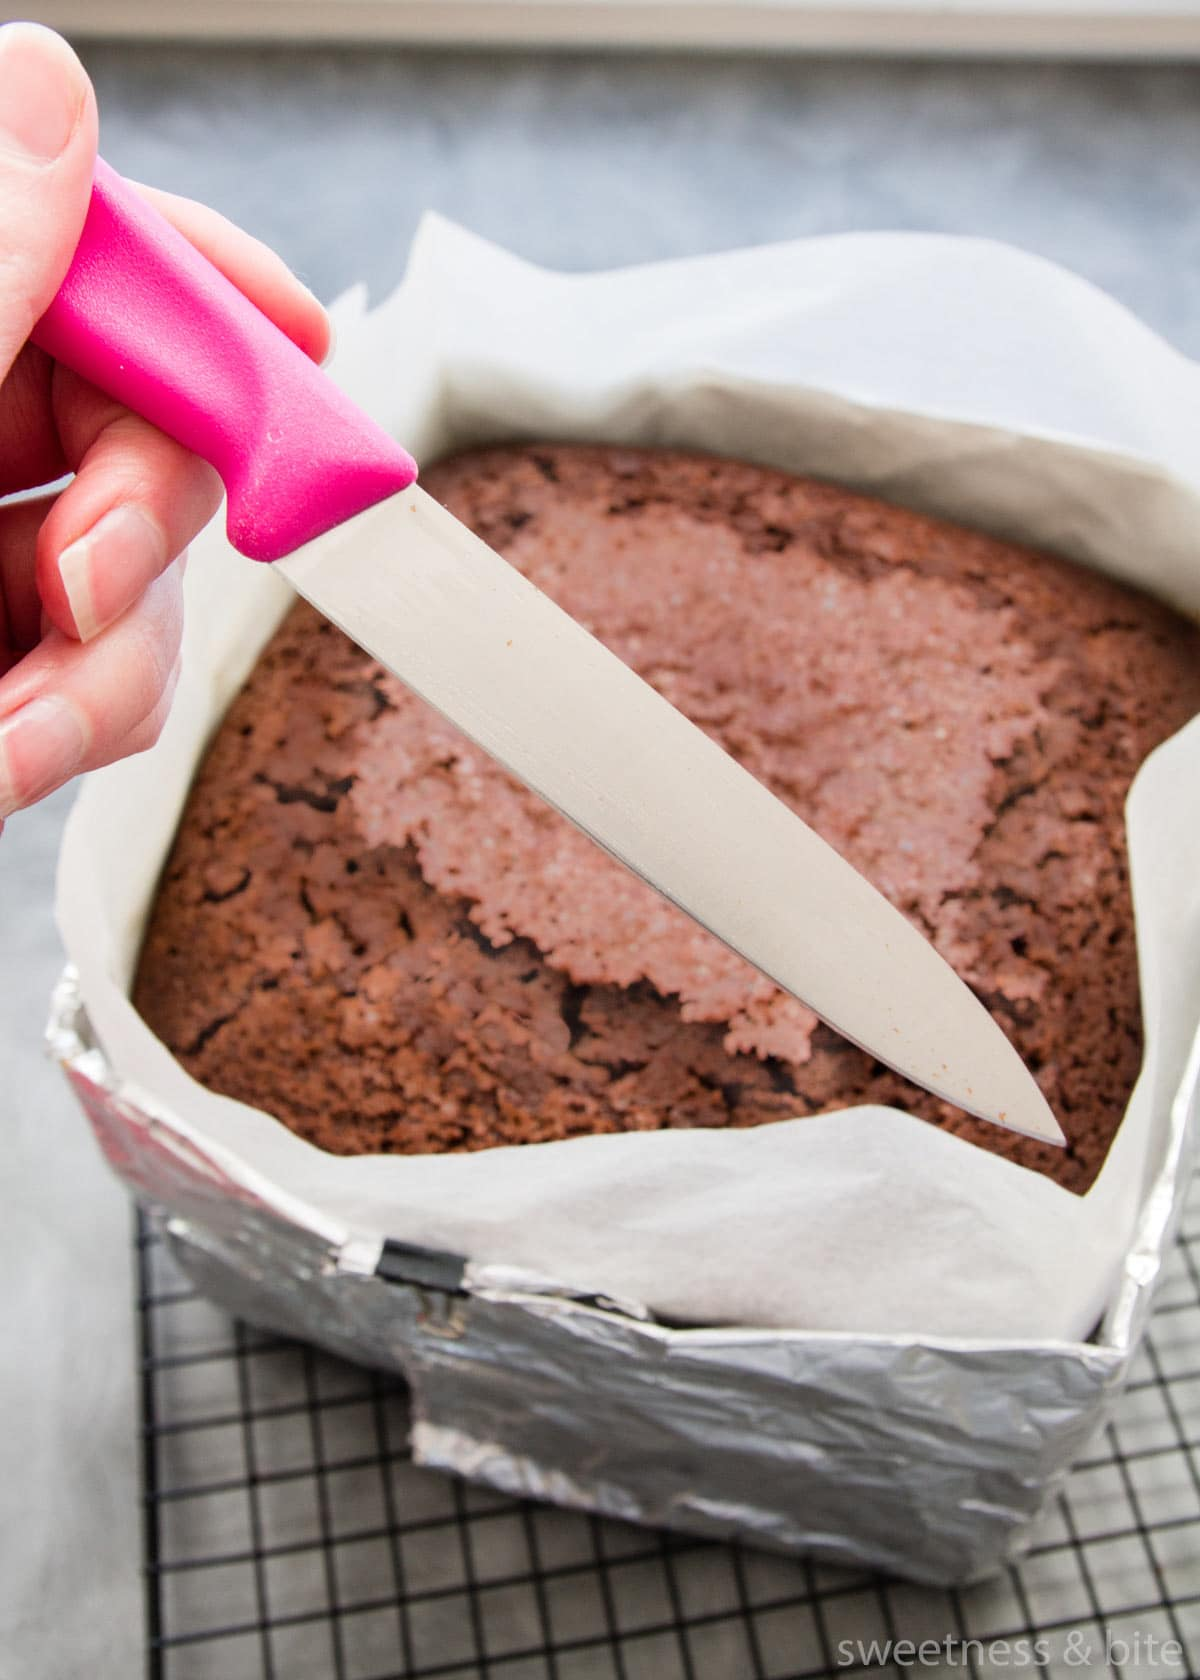 How to Check Your Cake Is Cooked Perfectly. Step 2 - The Knife Test.